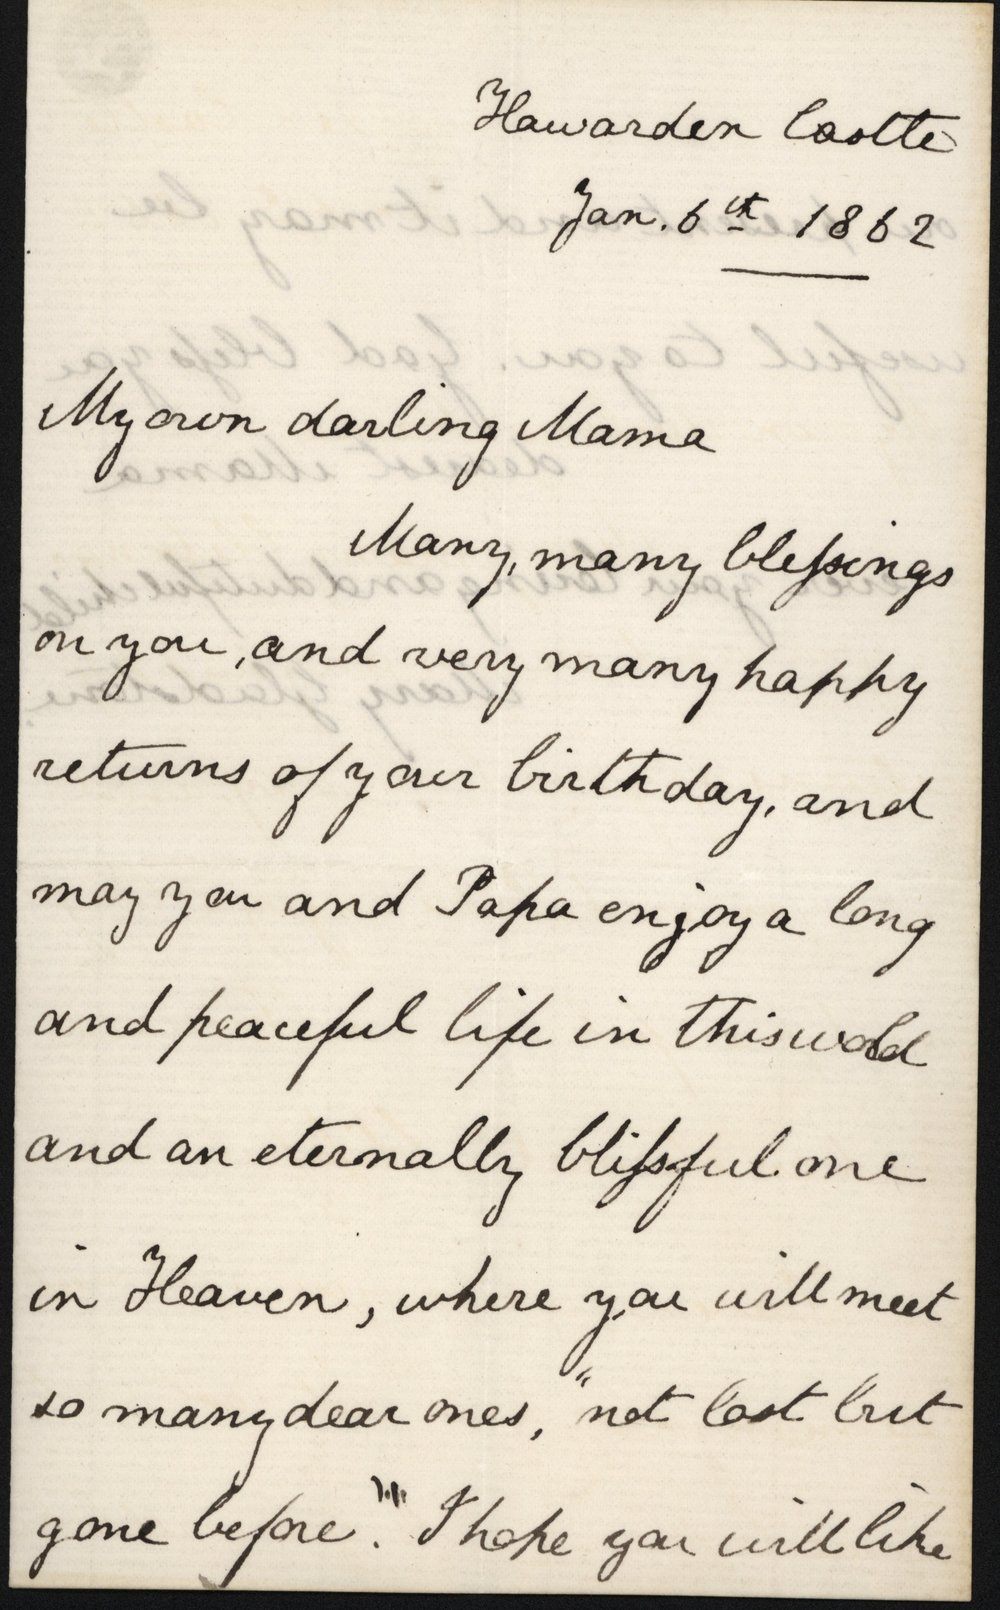 Mary Gladstone to Catherine Gladstone,6 January 1862 GG 759. Transcription below.